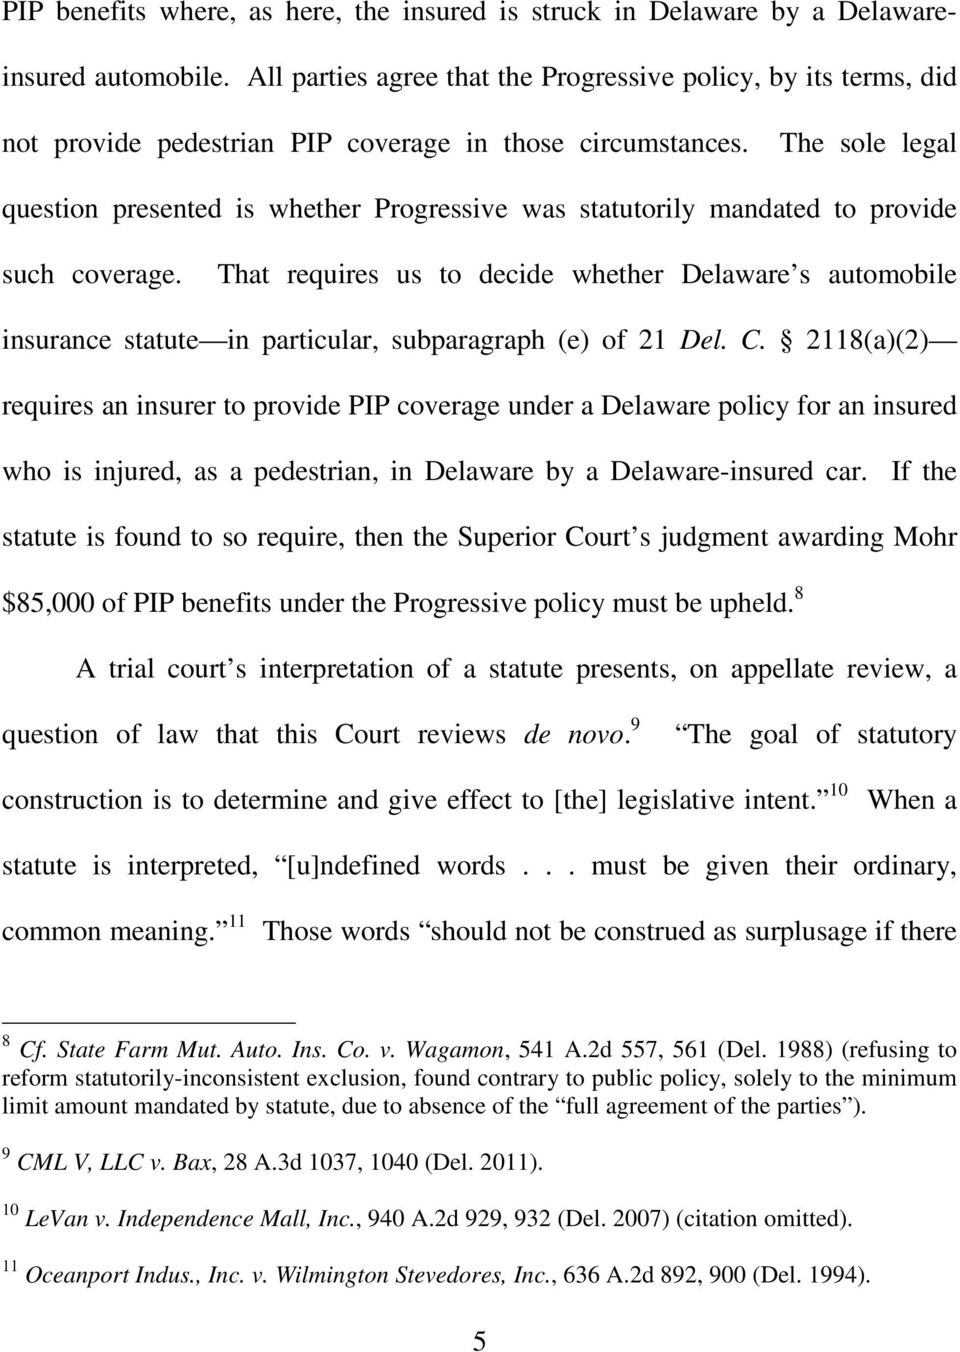 The sole legal question presented is whether Progressive was statutorily mandated to provide such coverage.